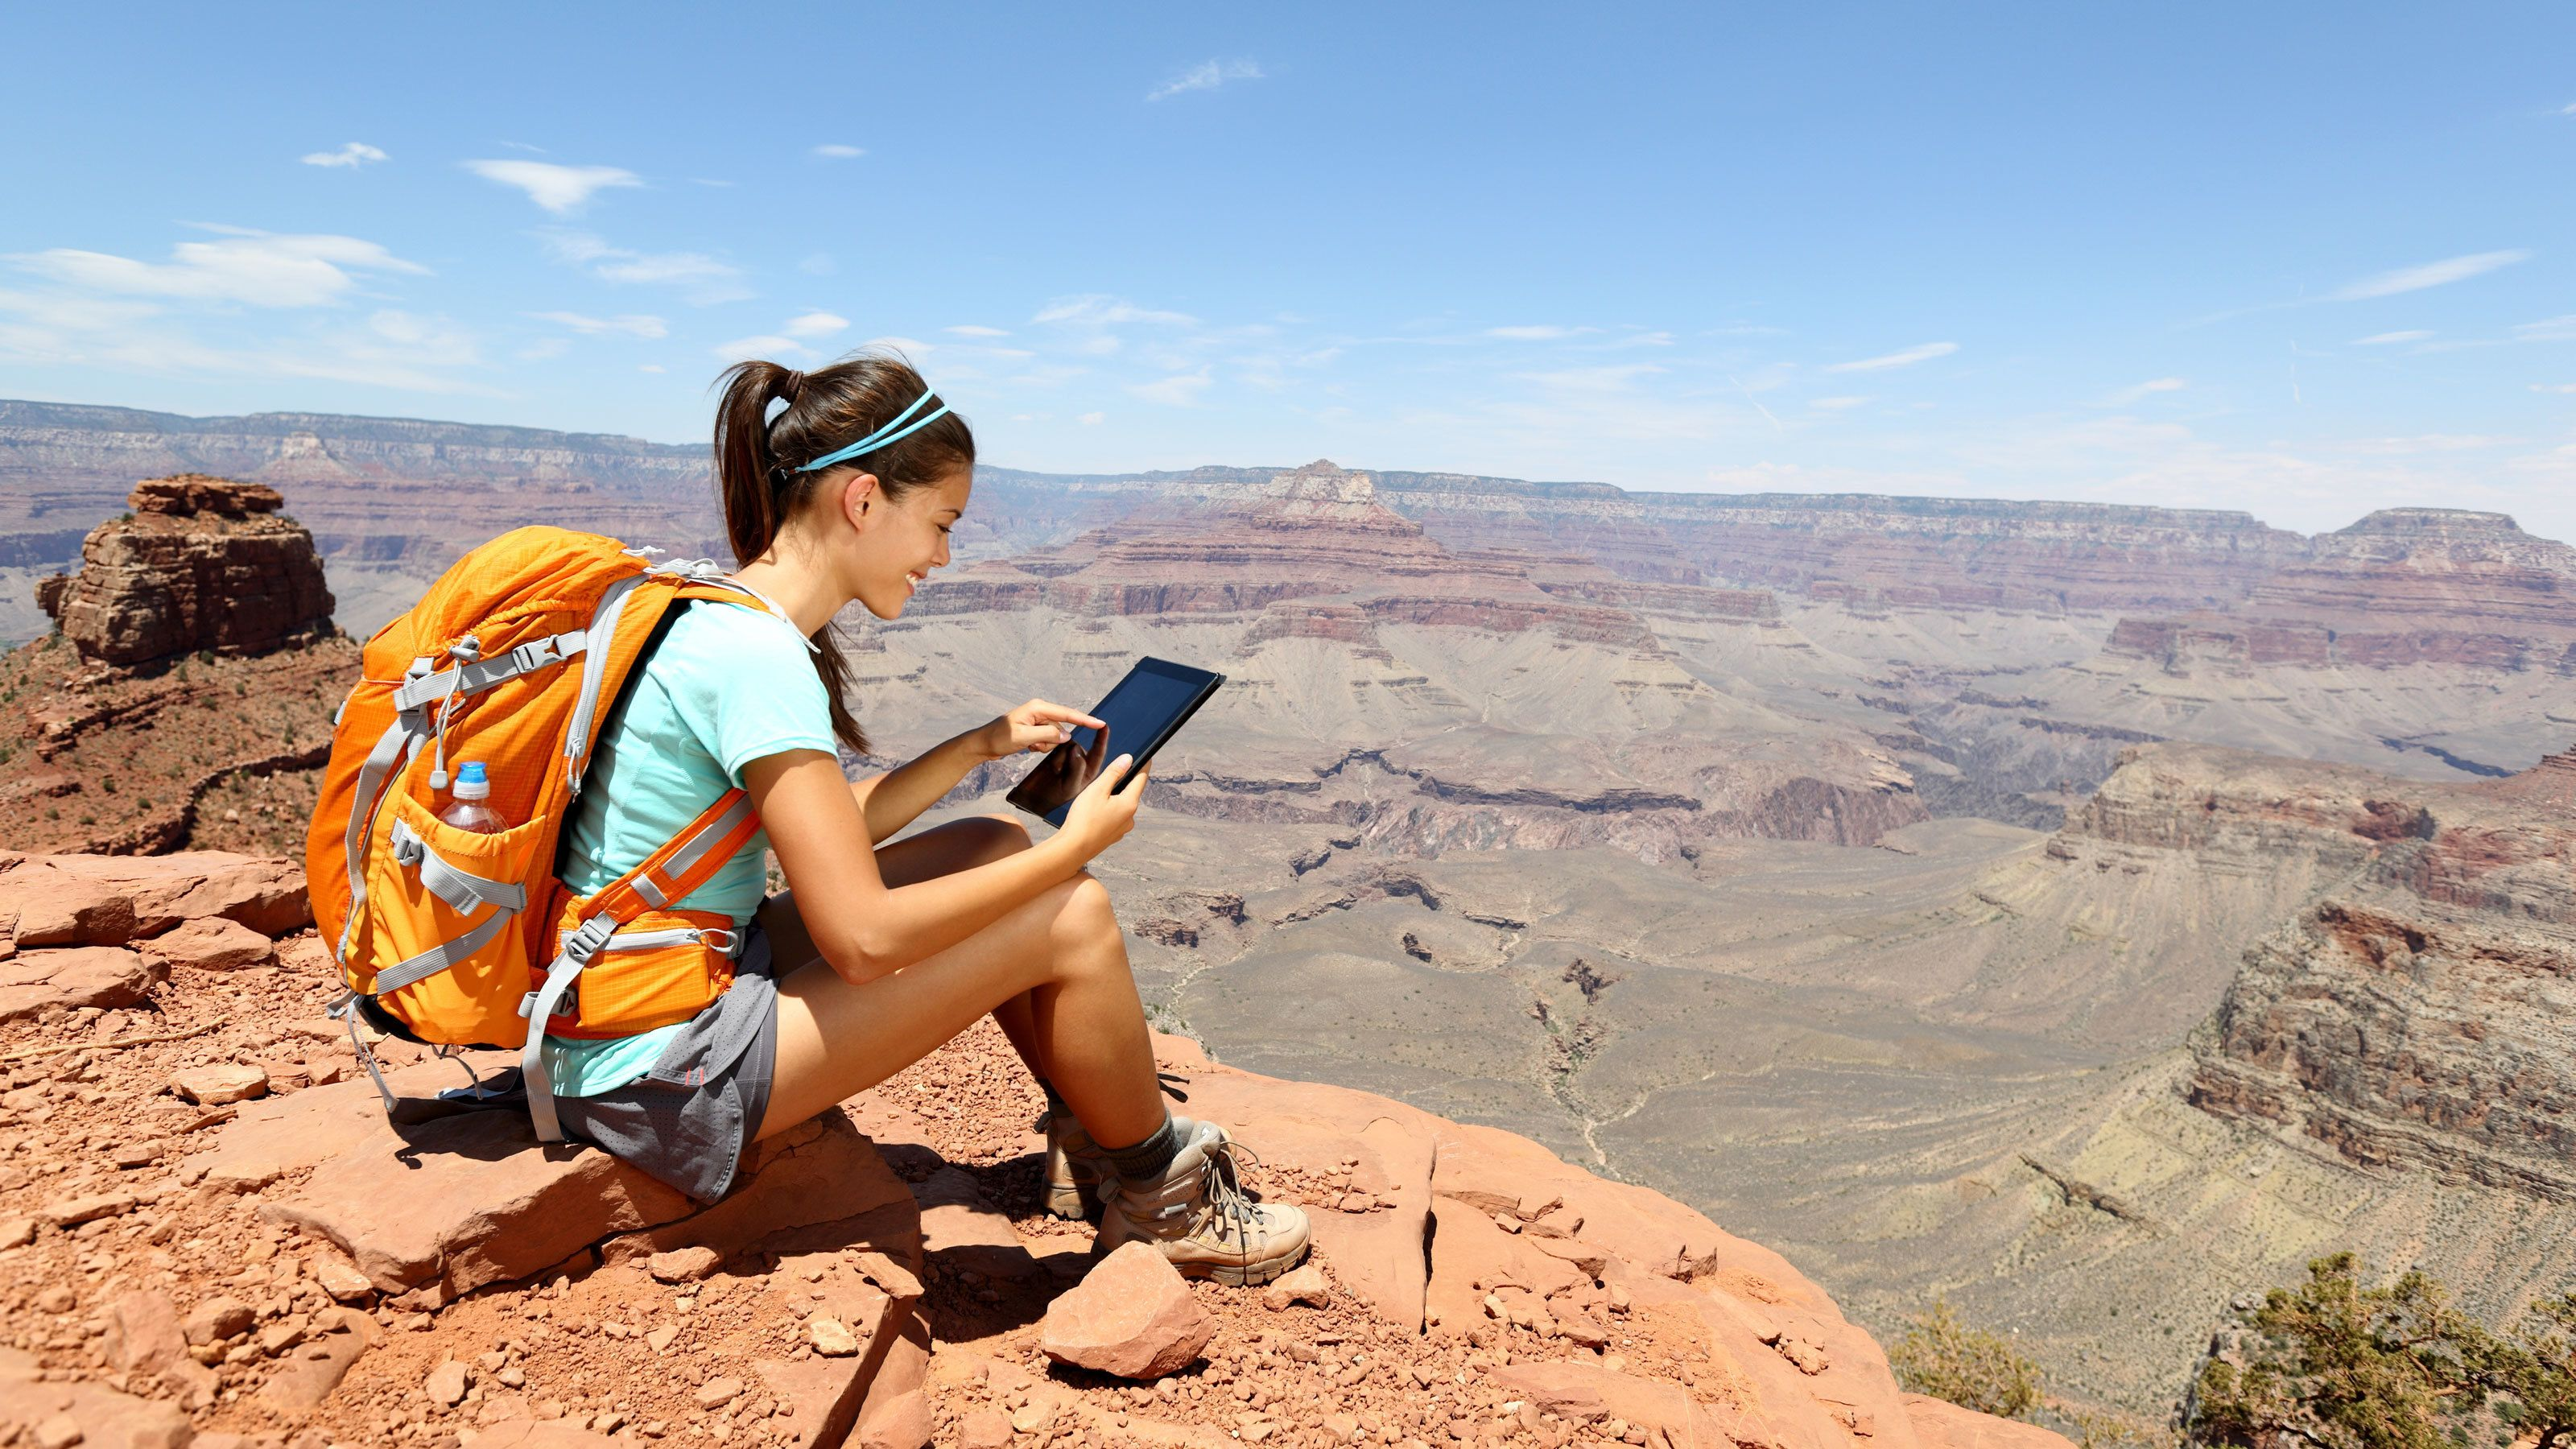 Woman capturing a memorable photo during her tour of the Grand Canyon